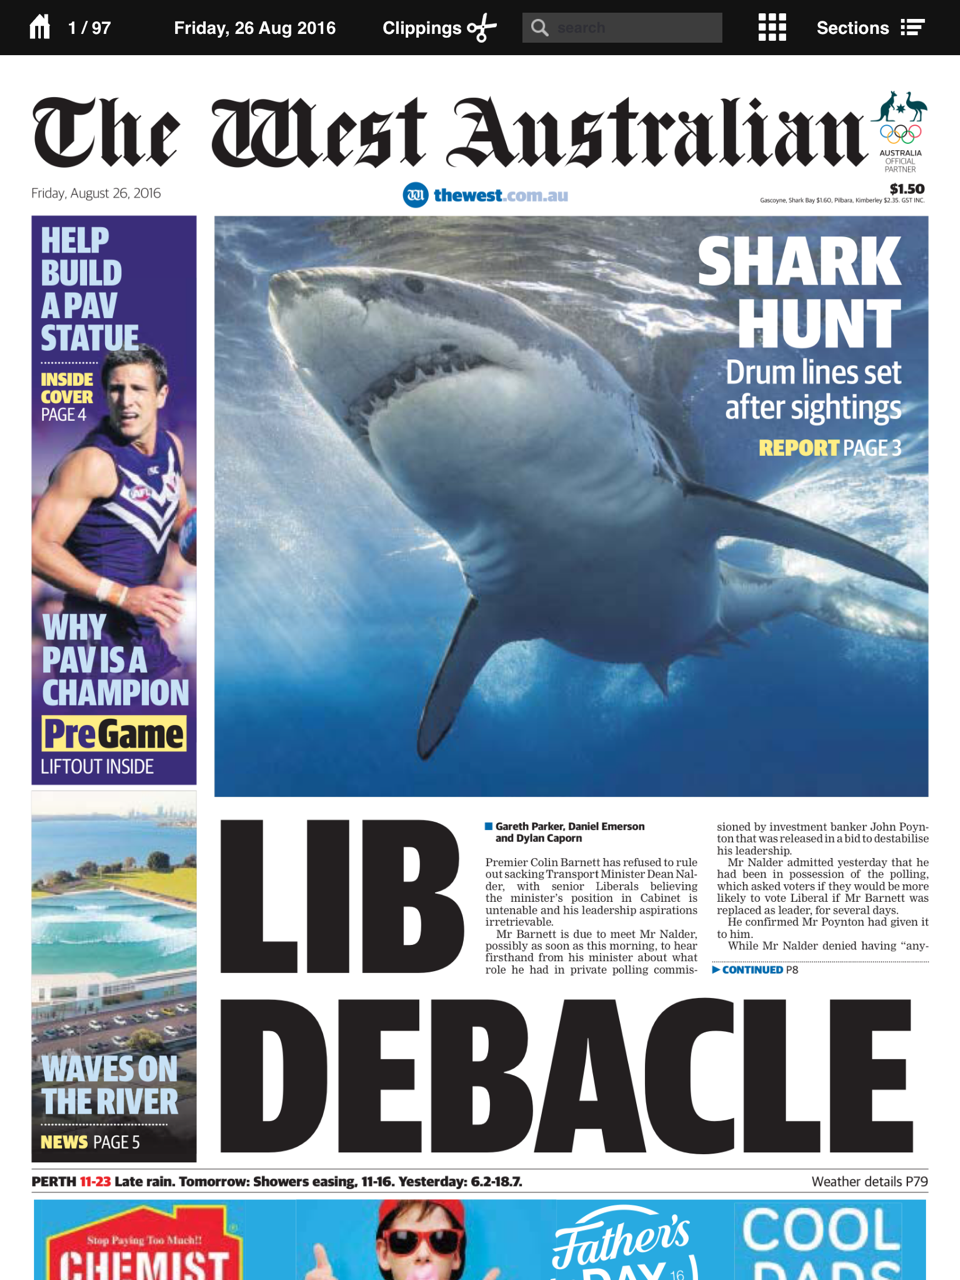 Liberals shamed in West Australian front page 23 Aug 2016.PNG